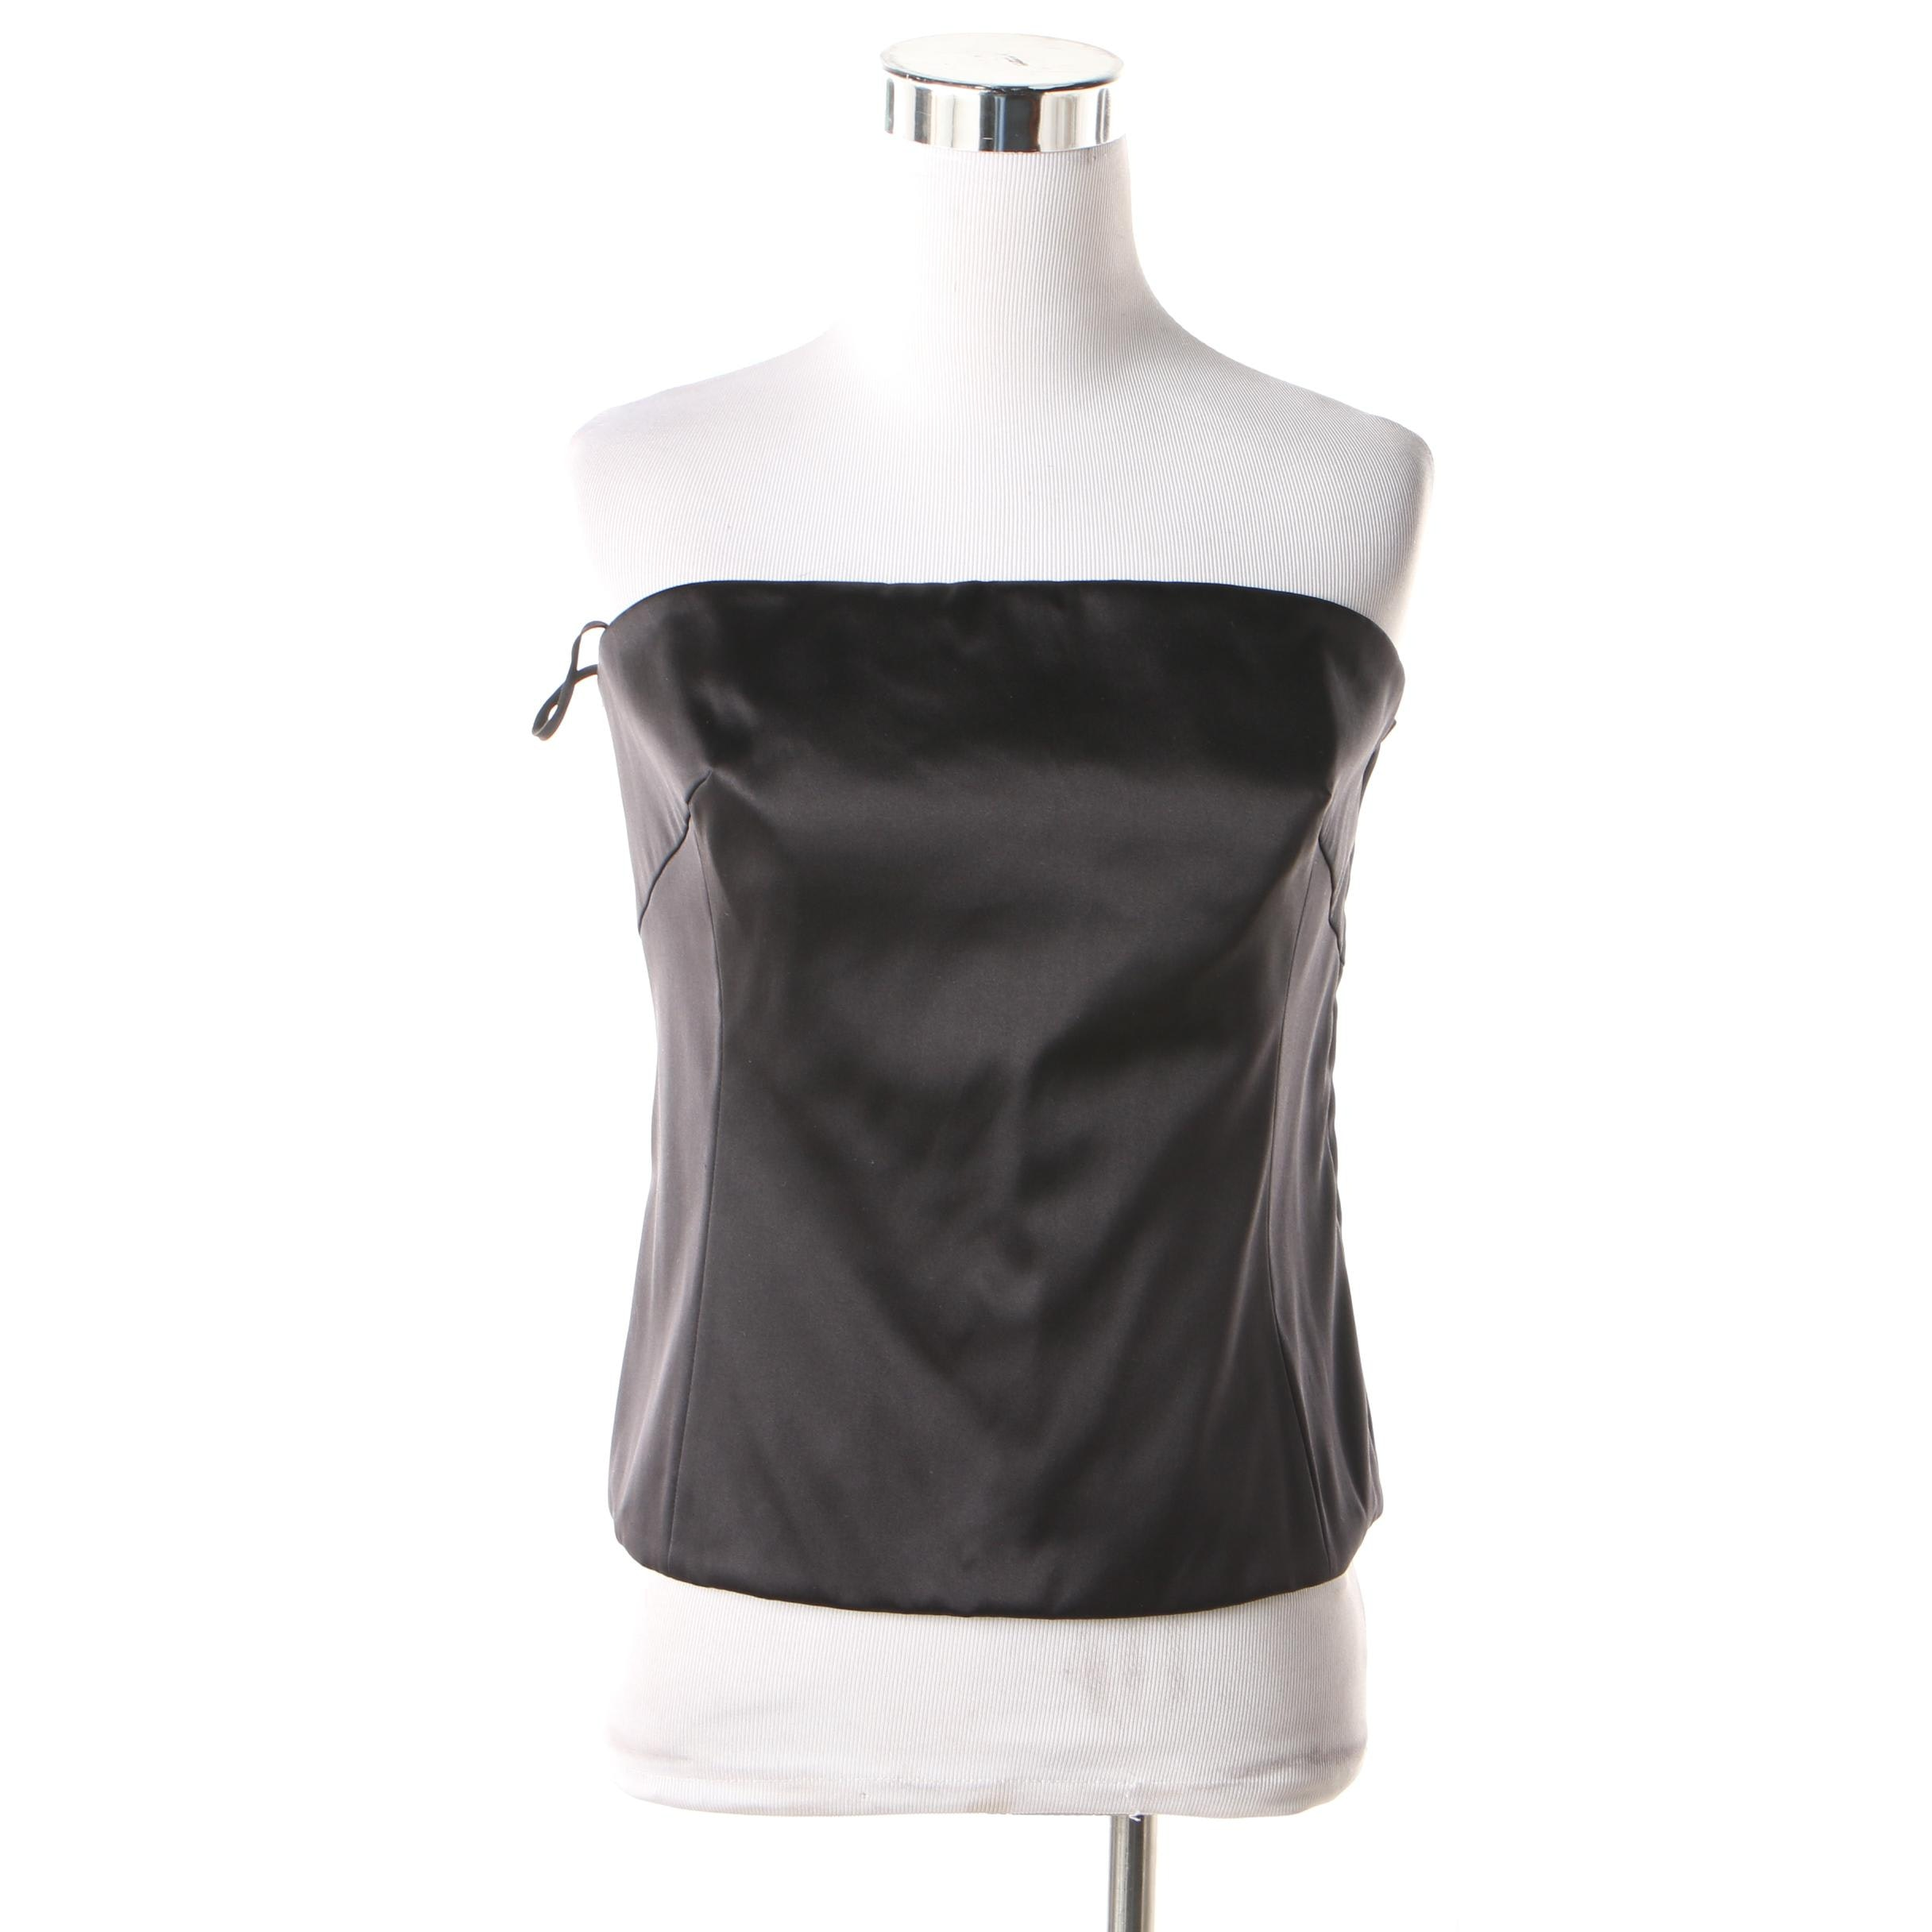 A-K-R-I-S Black Silk Blend Strapless Top from Bergdorf Goodman